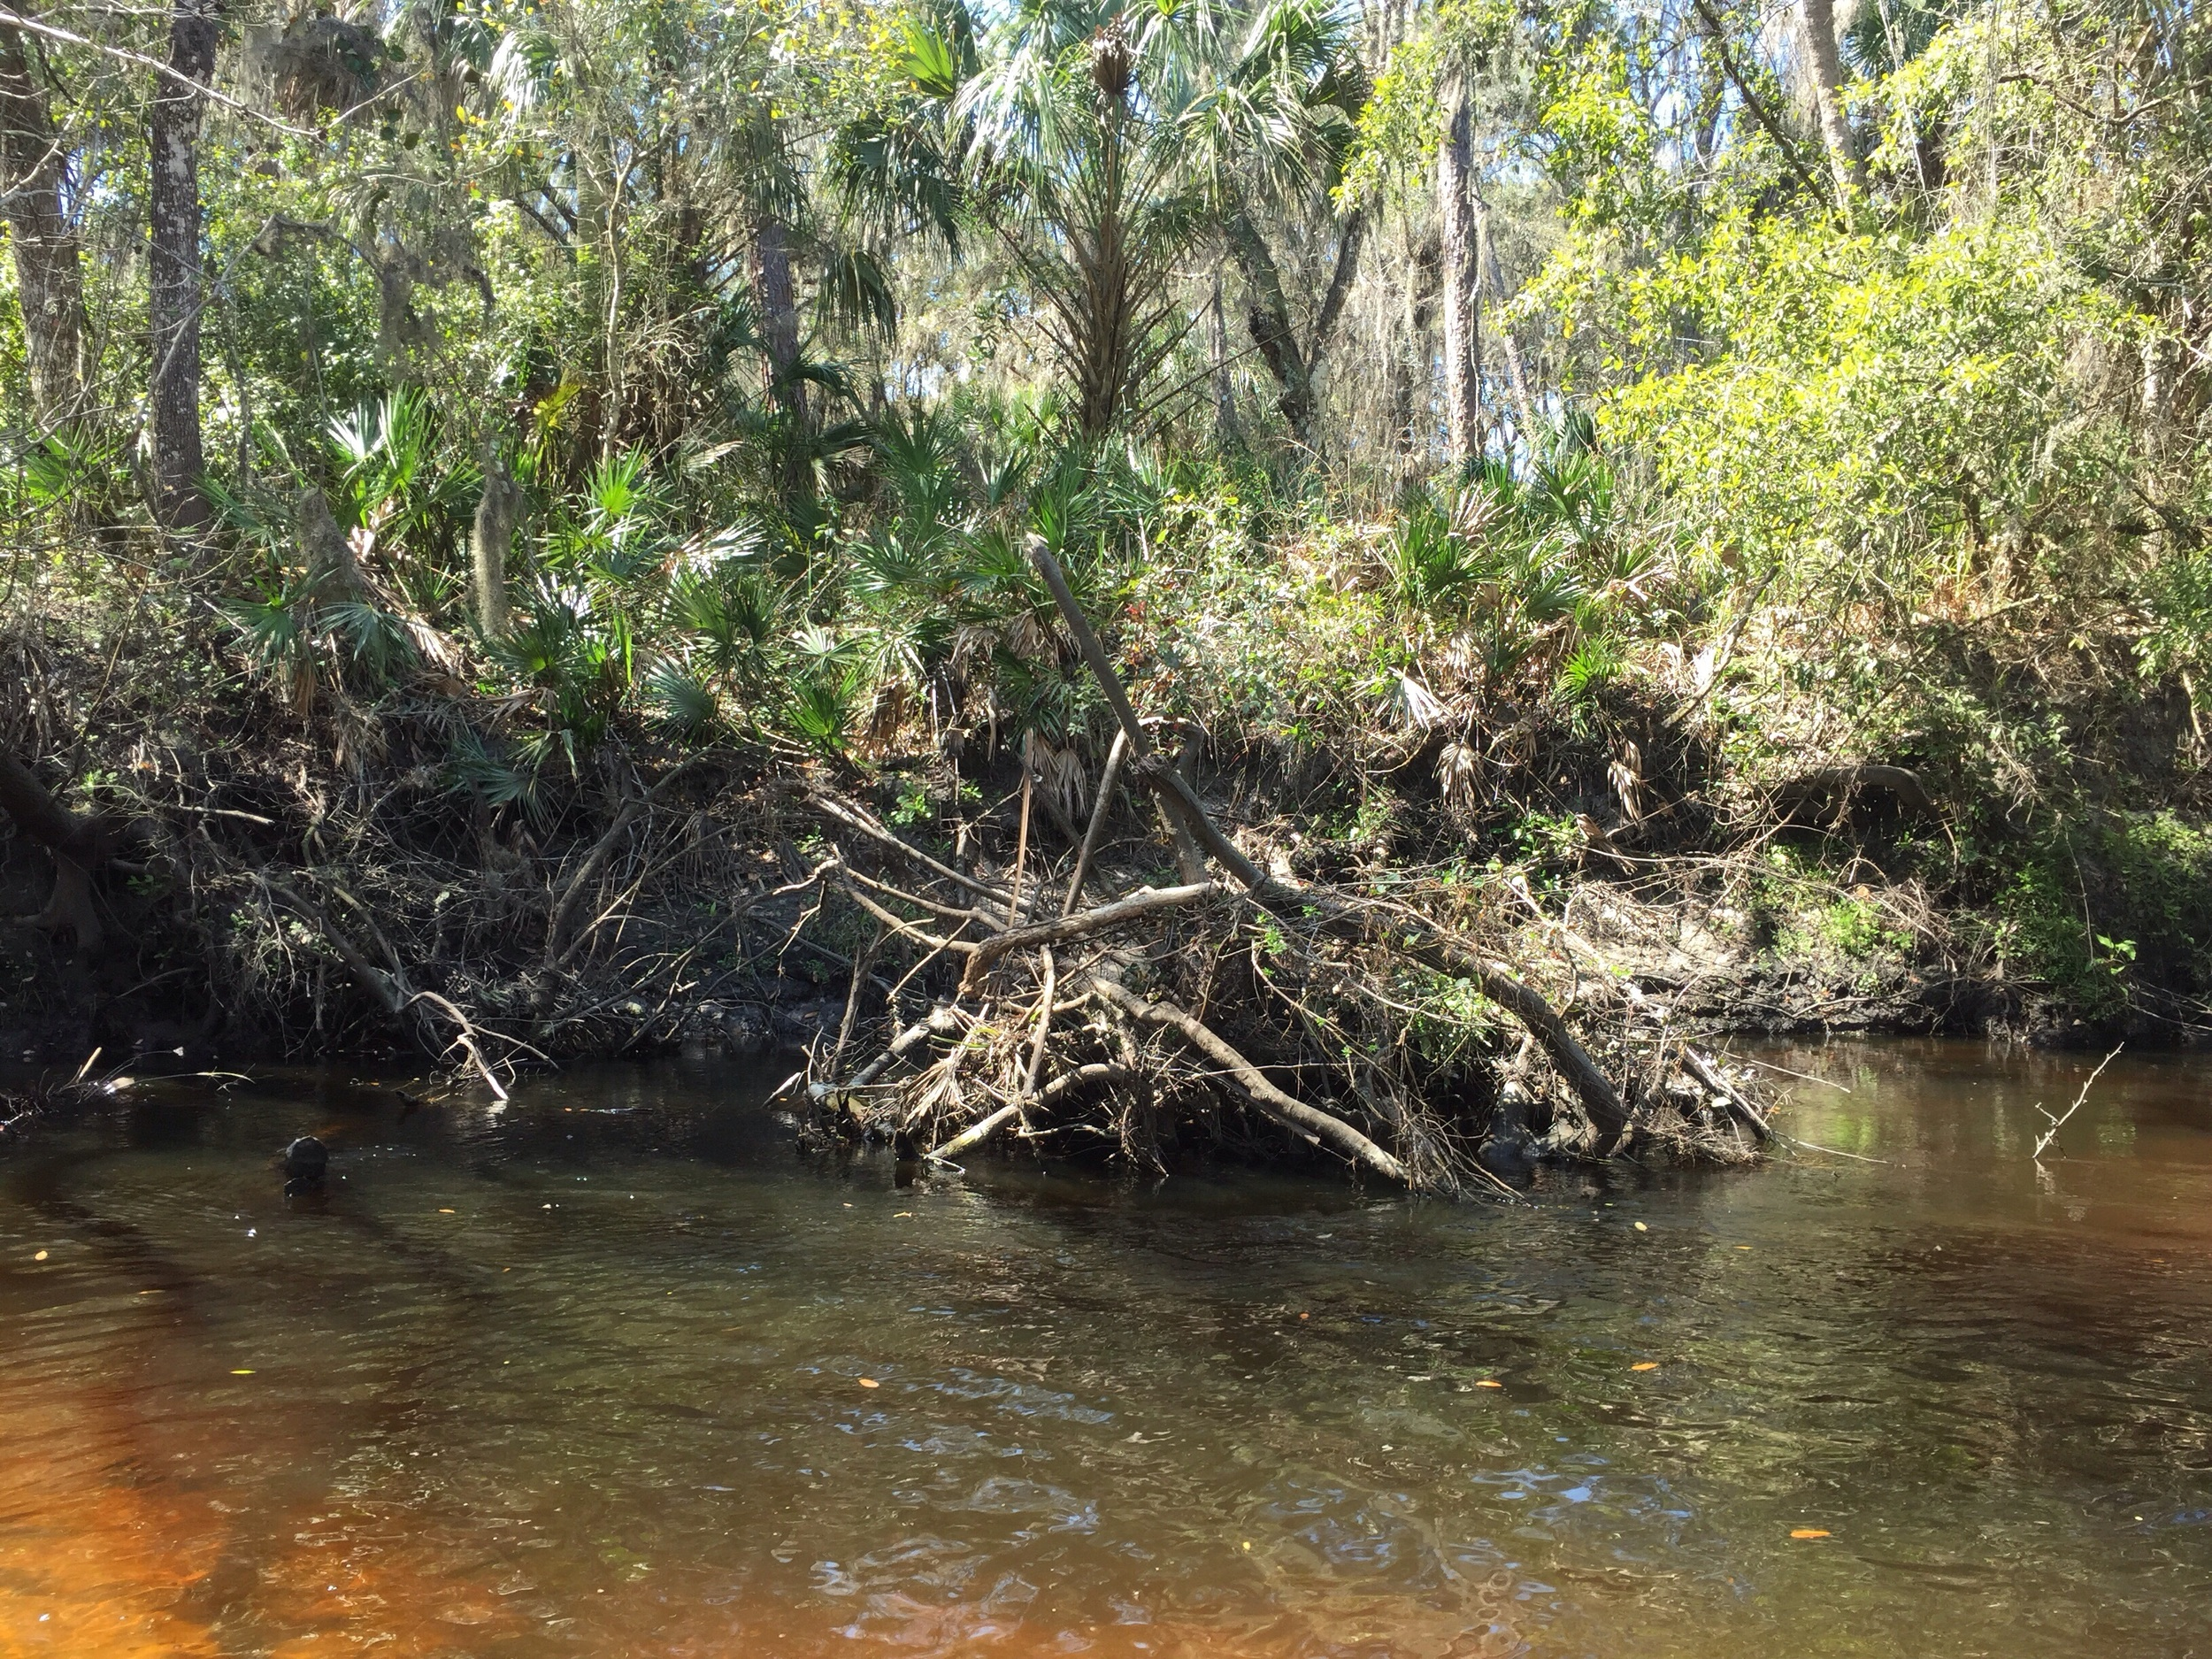 Snags such as this can provide great shelter for young turtles.